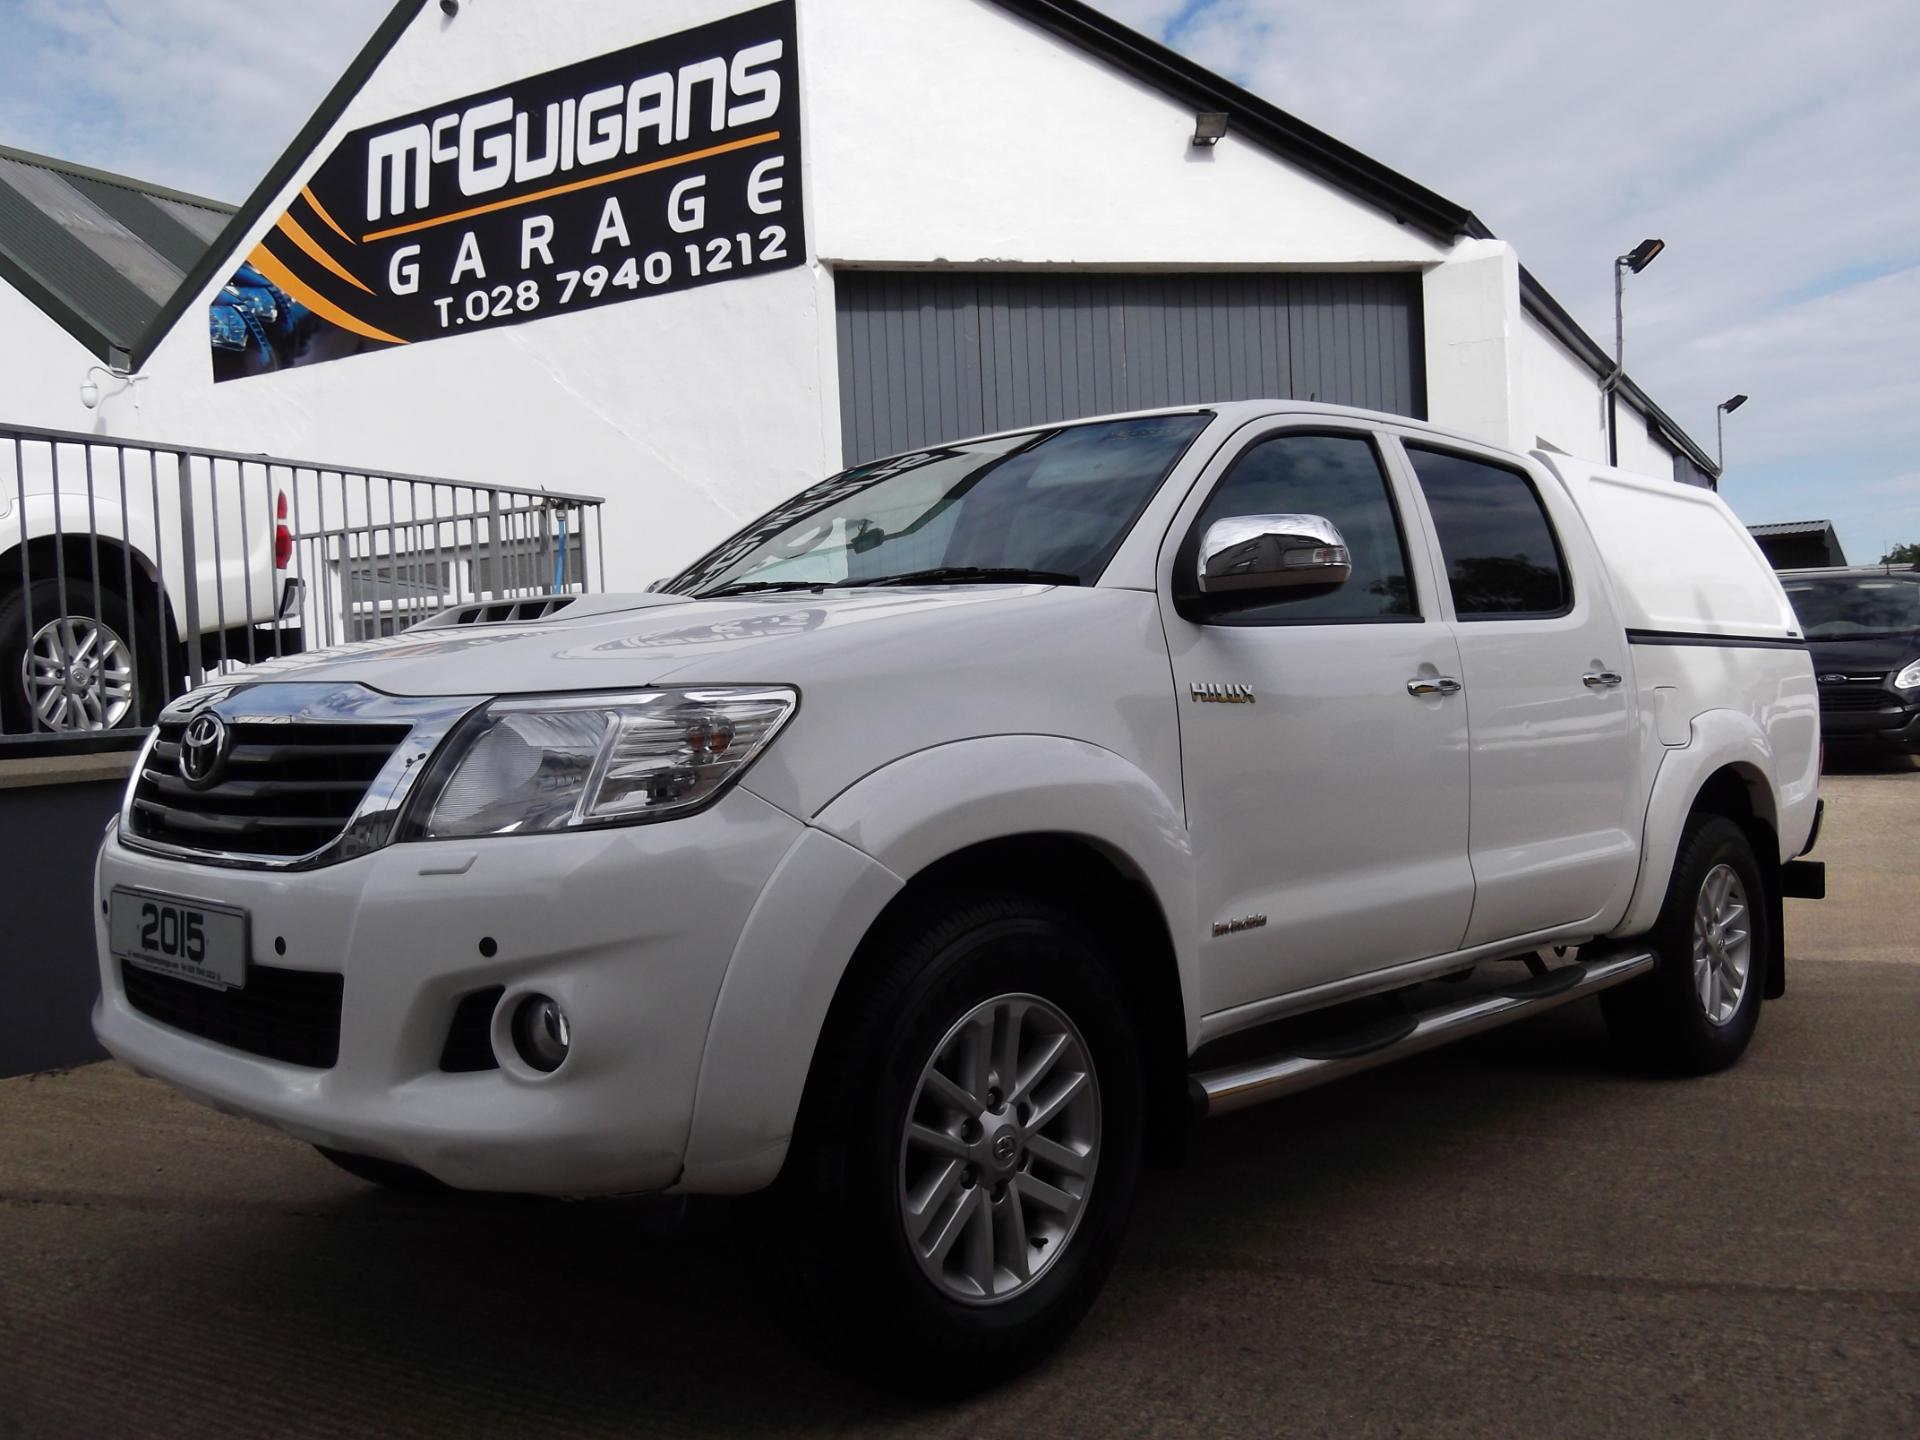 Used Toyota Hilux INVINCIBLE , 3 0 D-4D 171 , 4x4 , SAT NAV